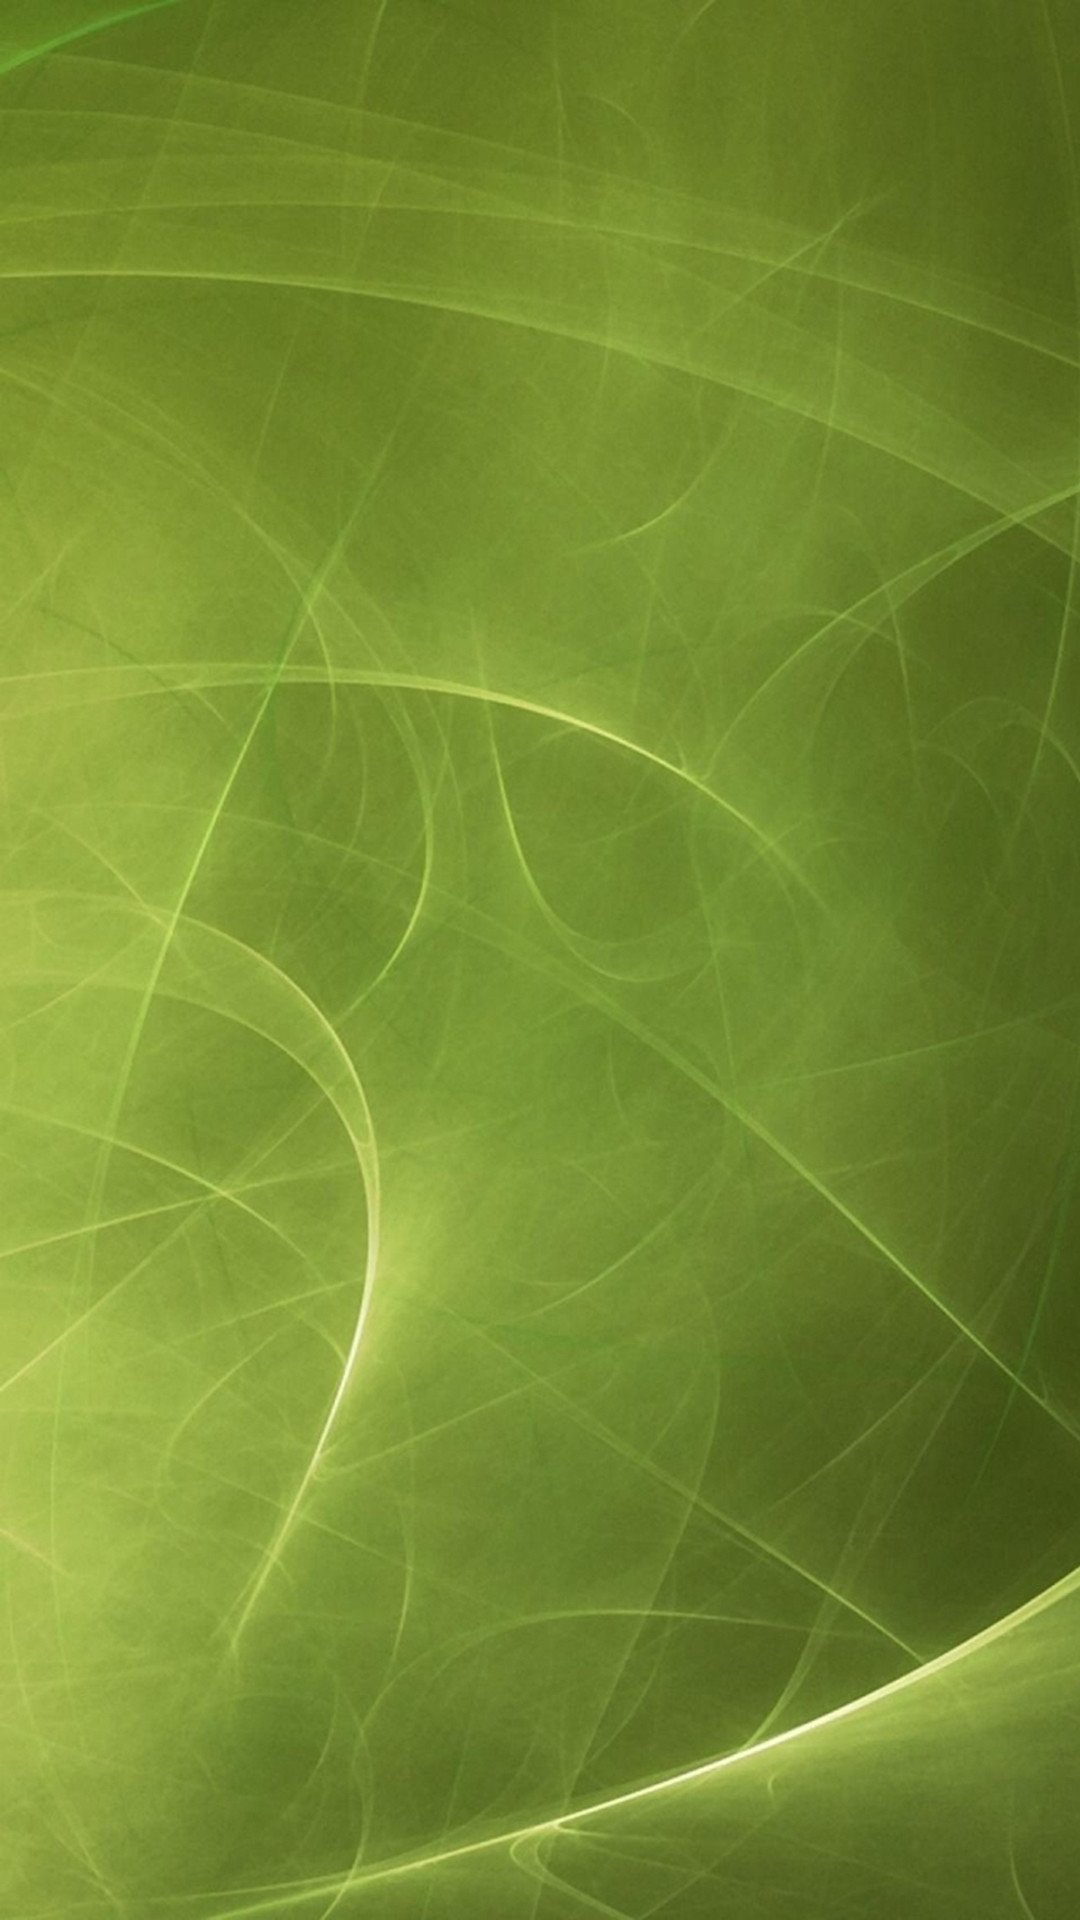 1080x1920 Green Silk Swirl Background iPhone 6 wallpaper